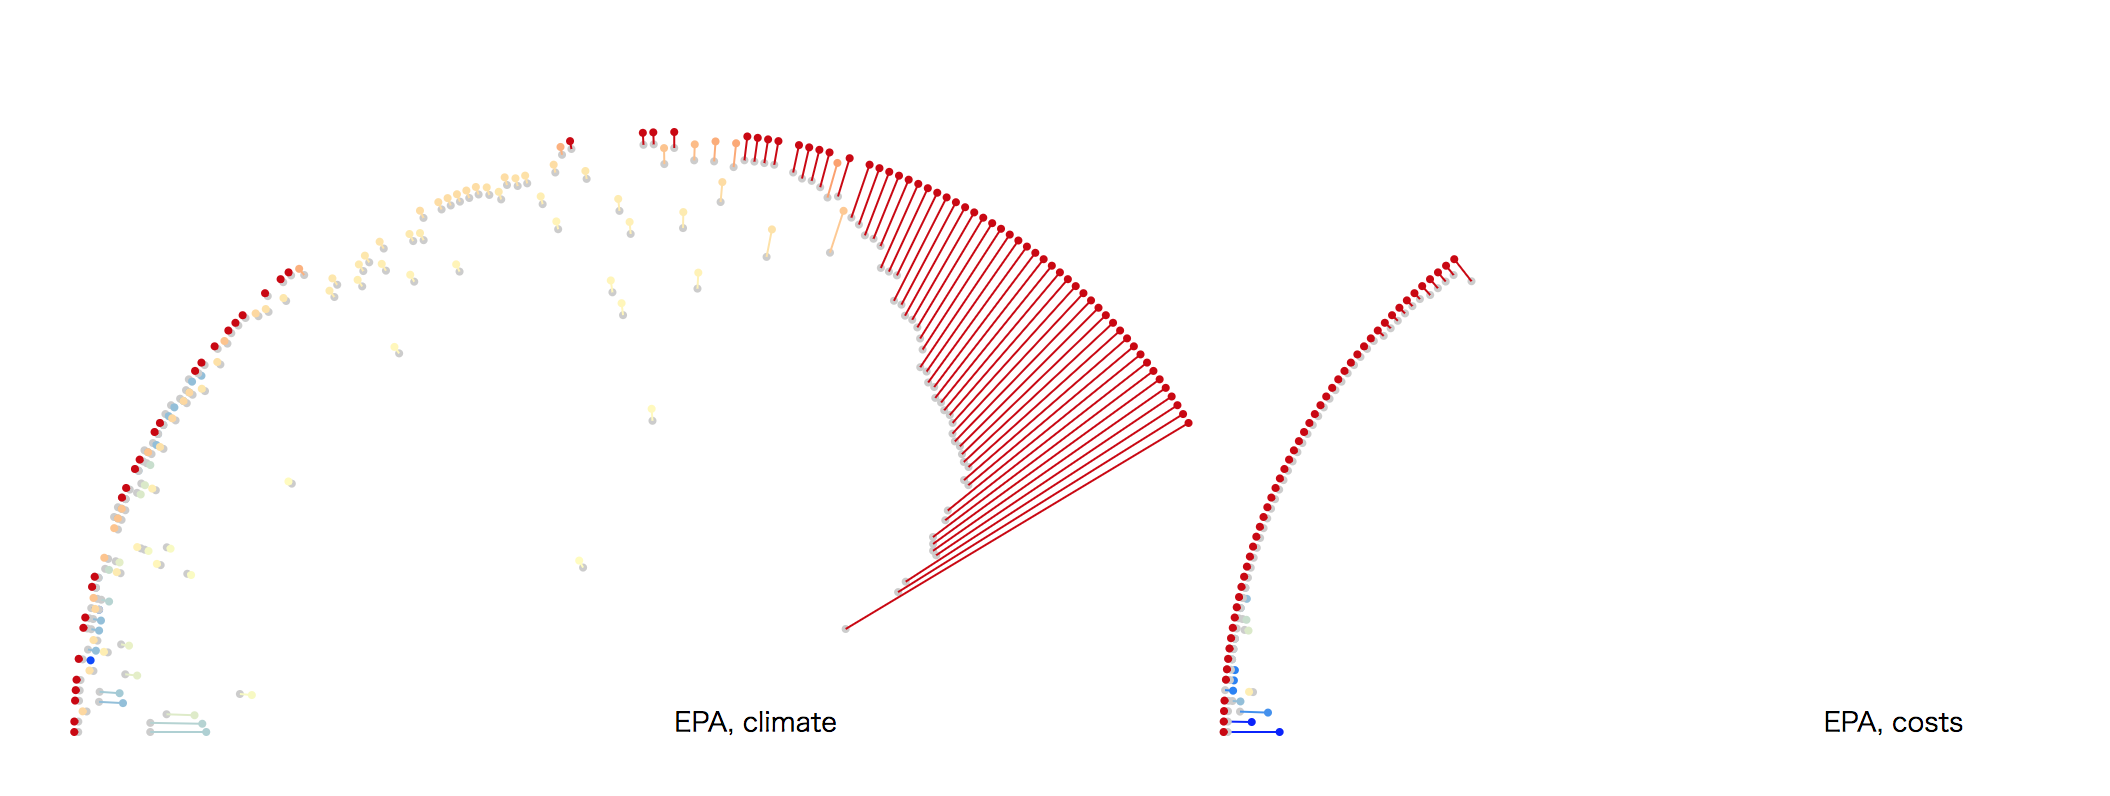 Using Visualization to Illuminate Shifting Climate Rhetorics